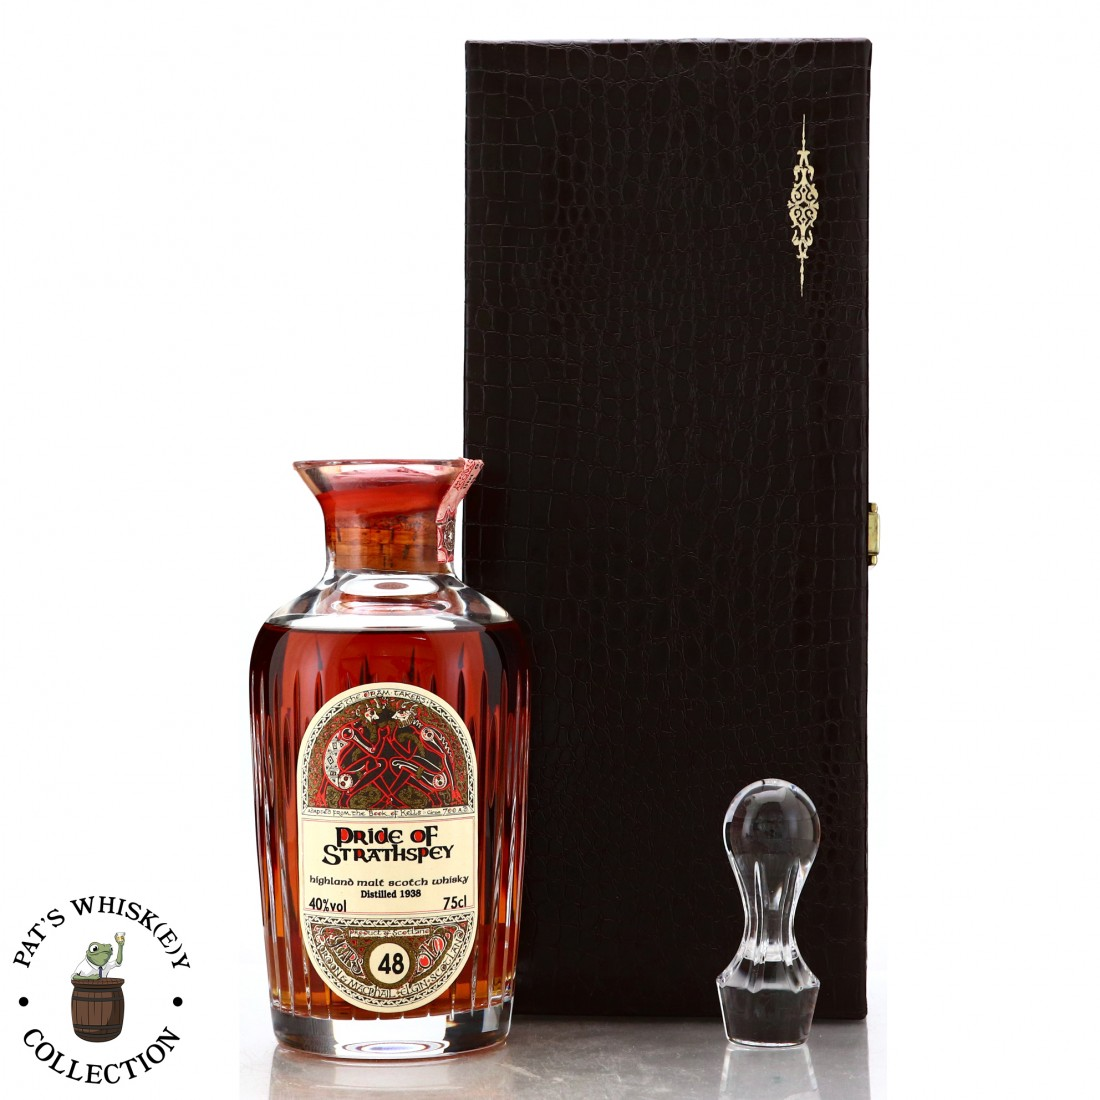 Pride of Strathspey 1938 Gordon and MacPhail 48 Year Old ' Book of Kells' Decanter